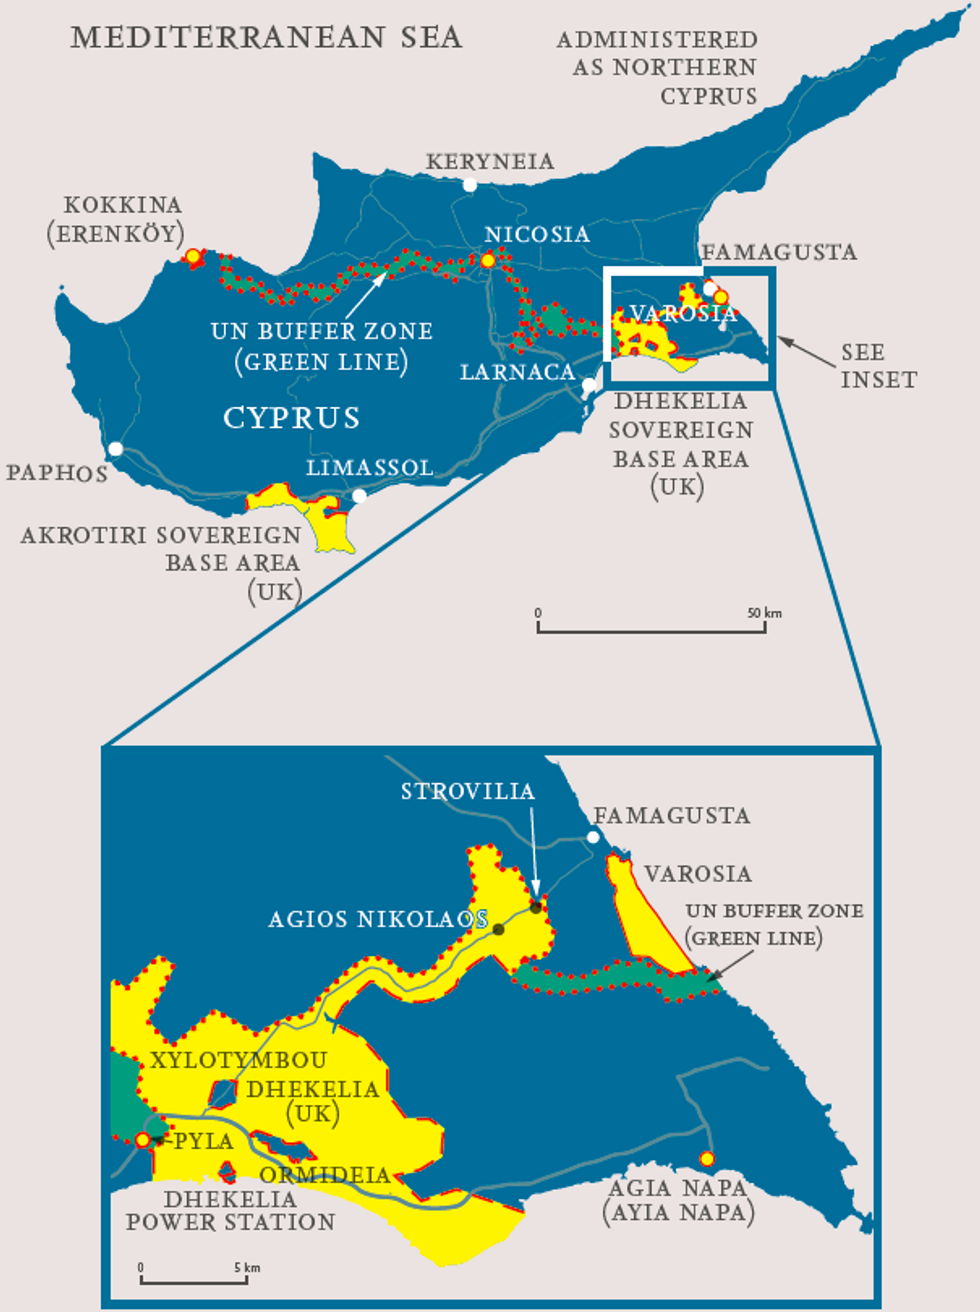 Ideally, u200bCyprus shouldn't have any internal borders at all.